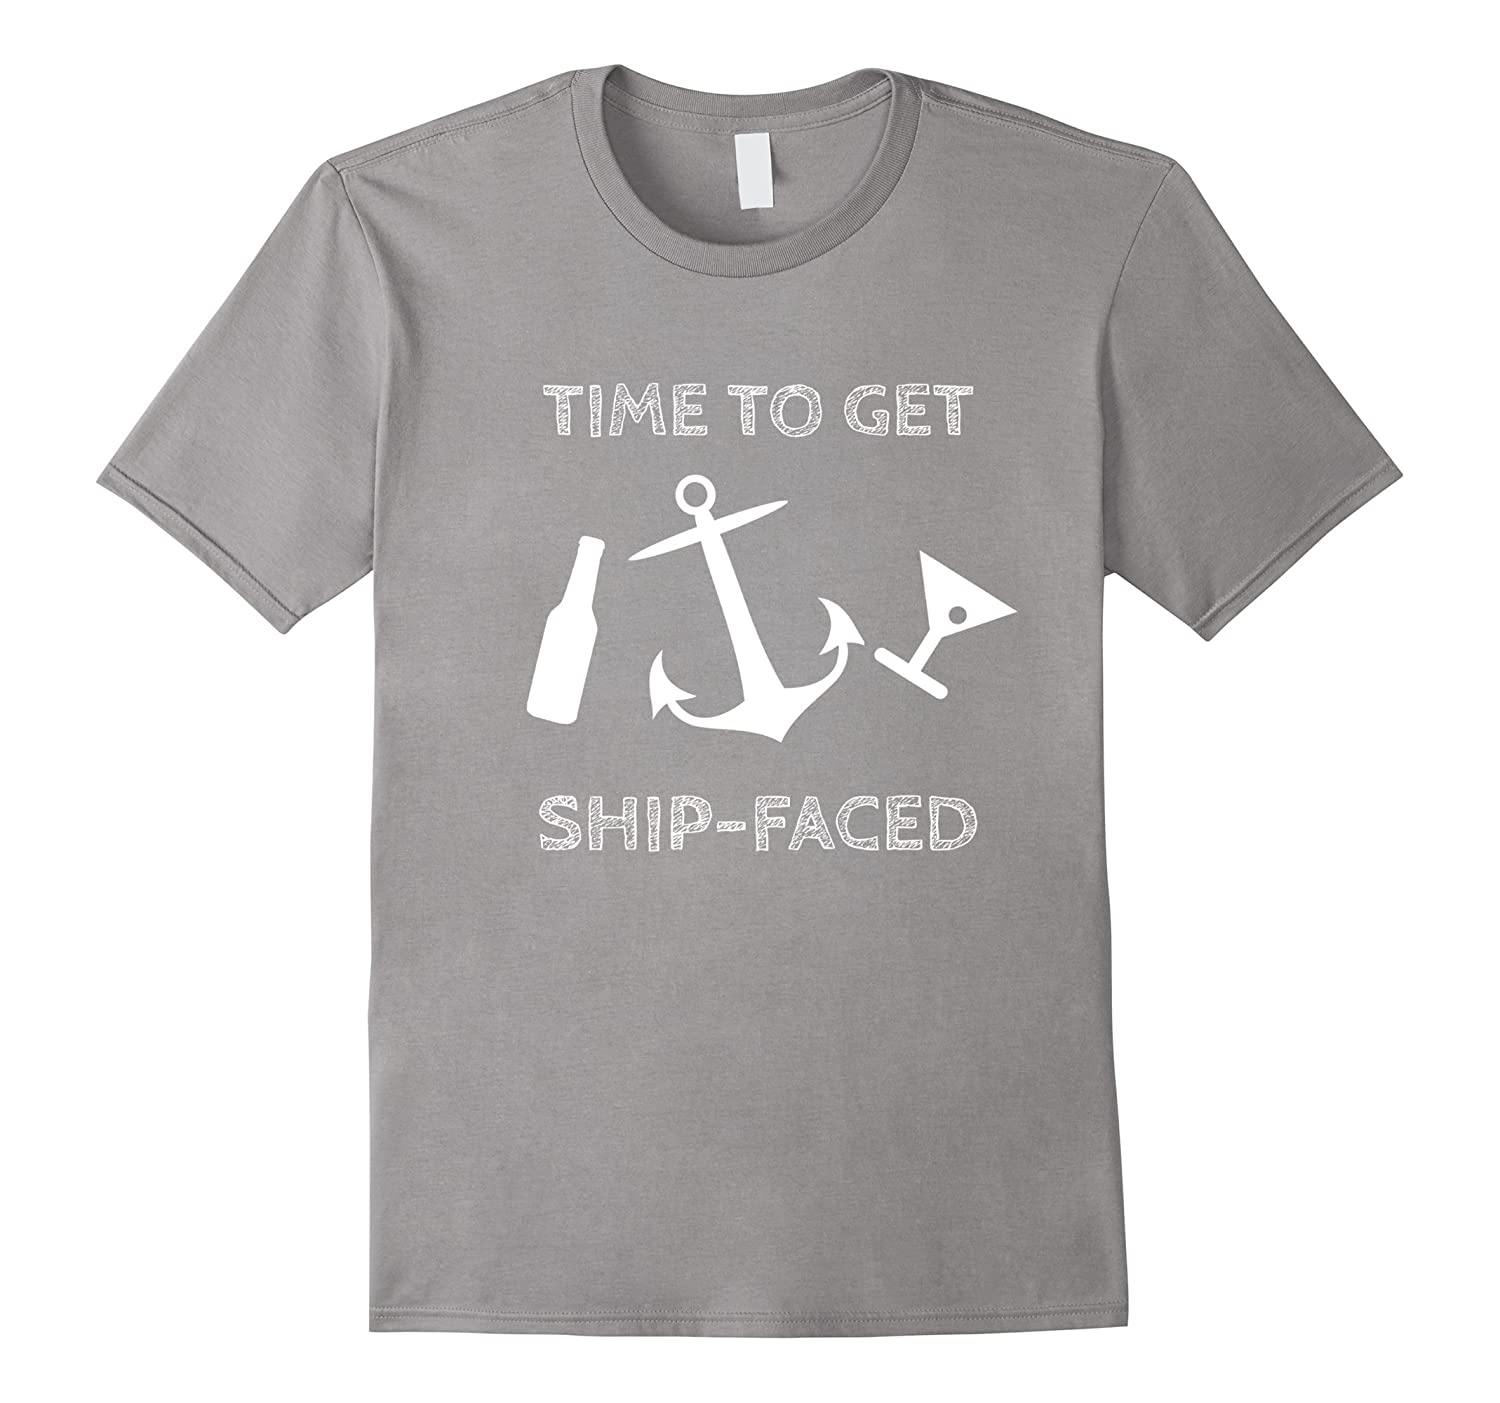 Time To Get Ship Faced – Cruise Ship Shirt – Cruise Apparel-Teevkd